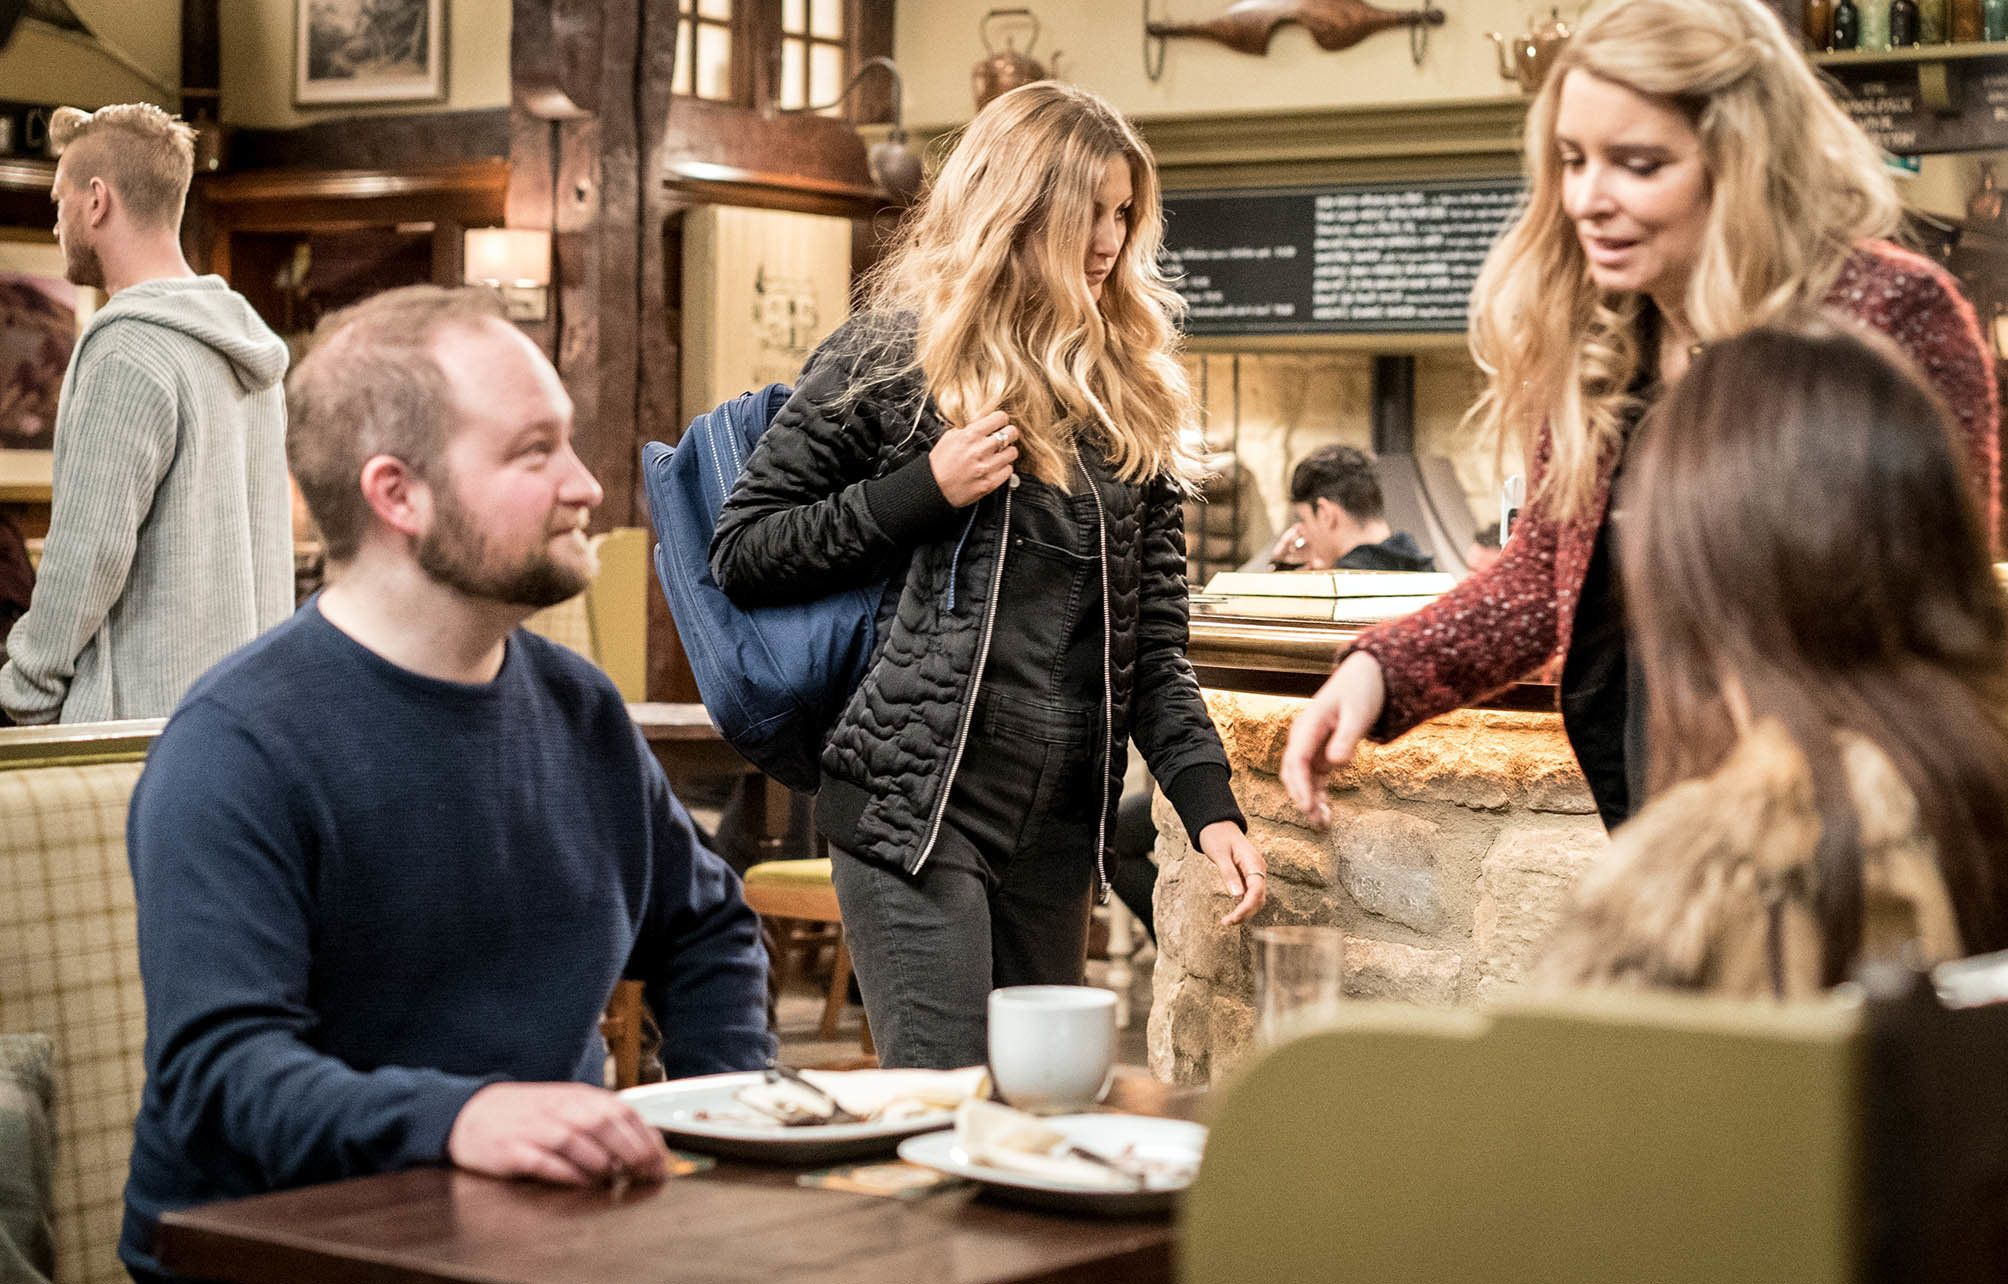 'Emmerdale' Spoiler! Holly Teams Up With Troublesom